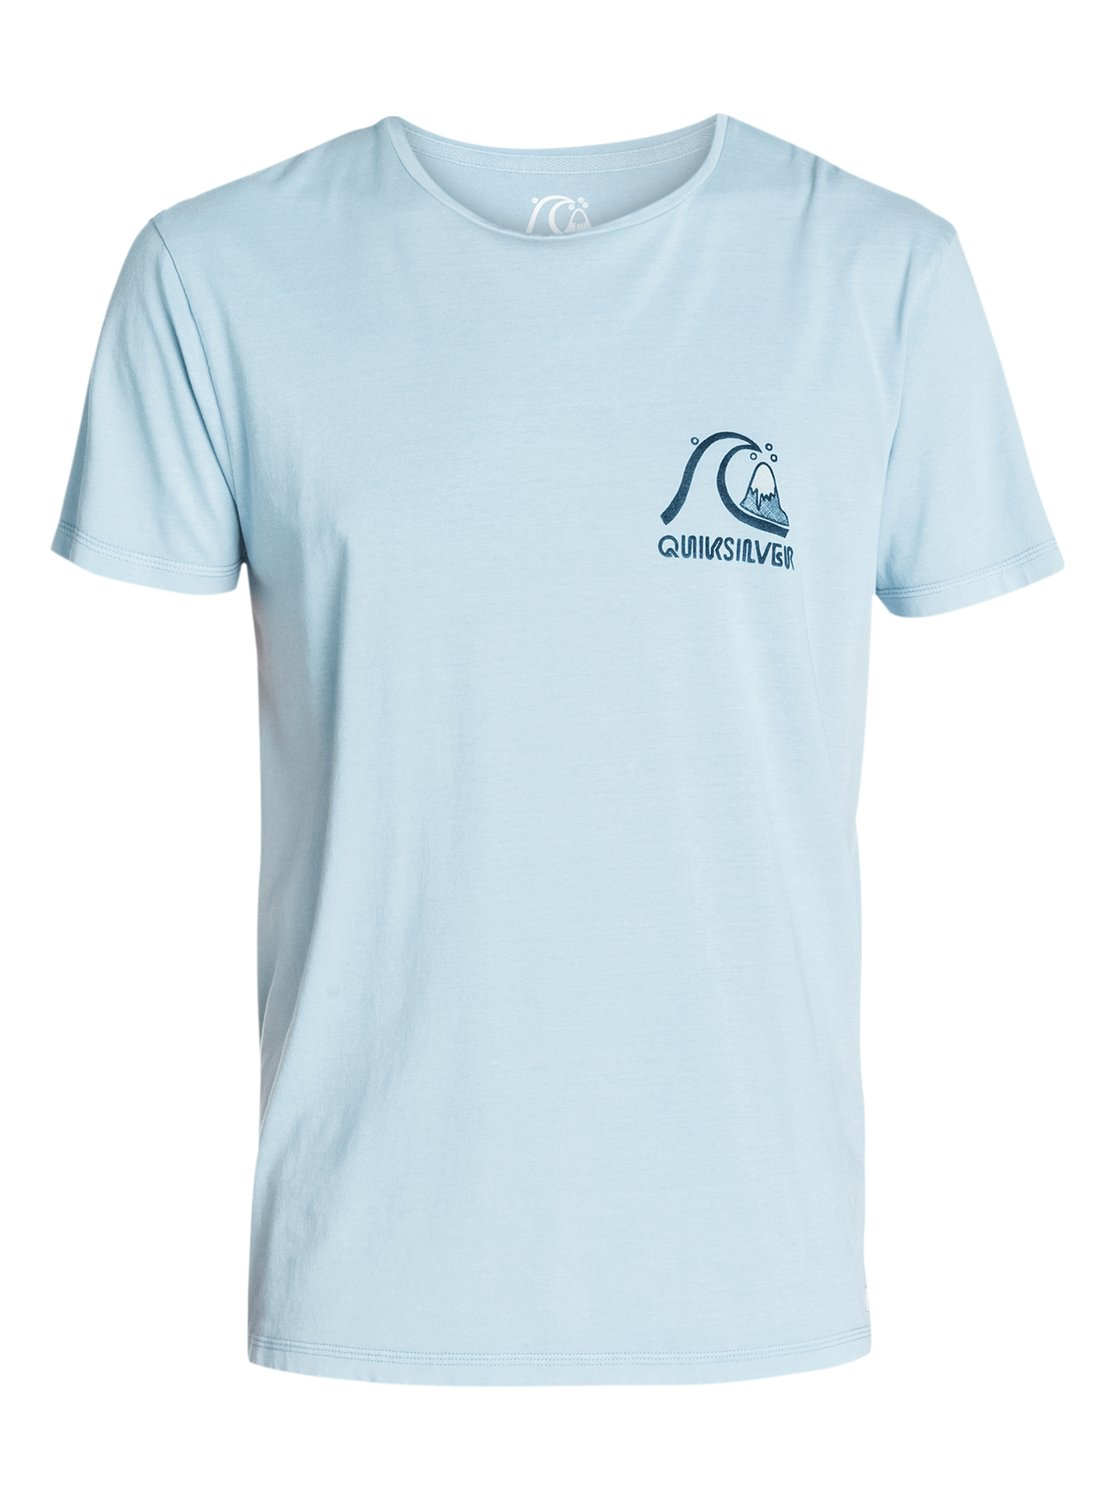 Garment Dyed Tee The Original - Quiksilver������� �������� Quiksilver � �������� ������� � ������� �� ��������� ����� 2015. ��������������: ������ ����������� �������� ���������� 140 �/��. �, ����������� ���� Modern Fit.<br>